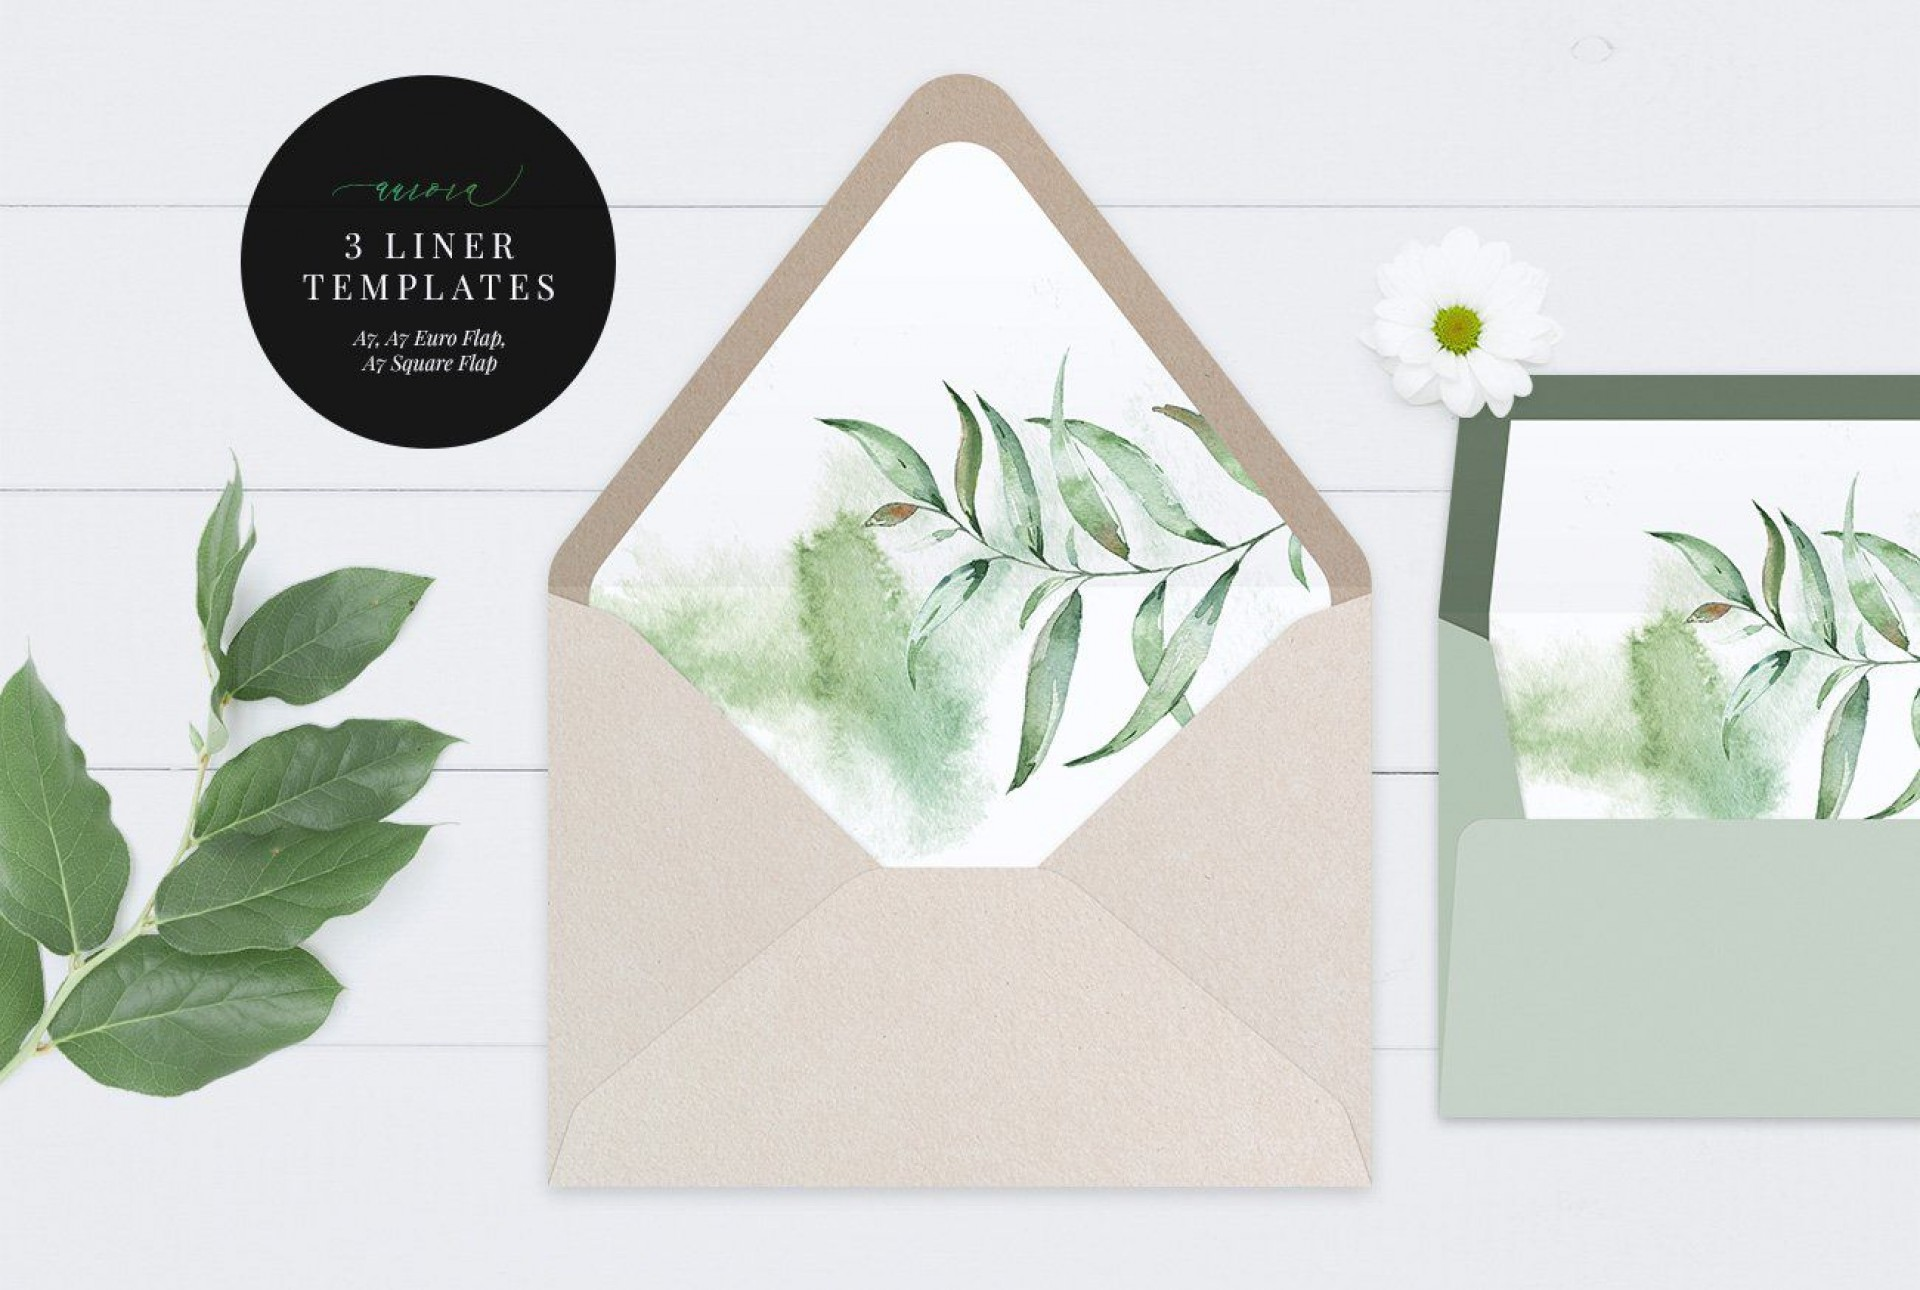 000 Awesome A7 Square Flap Envelope Liner Template Example 1920